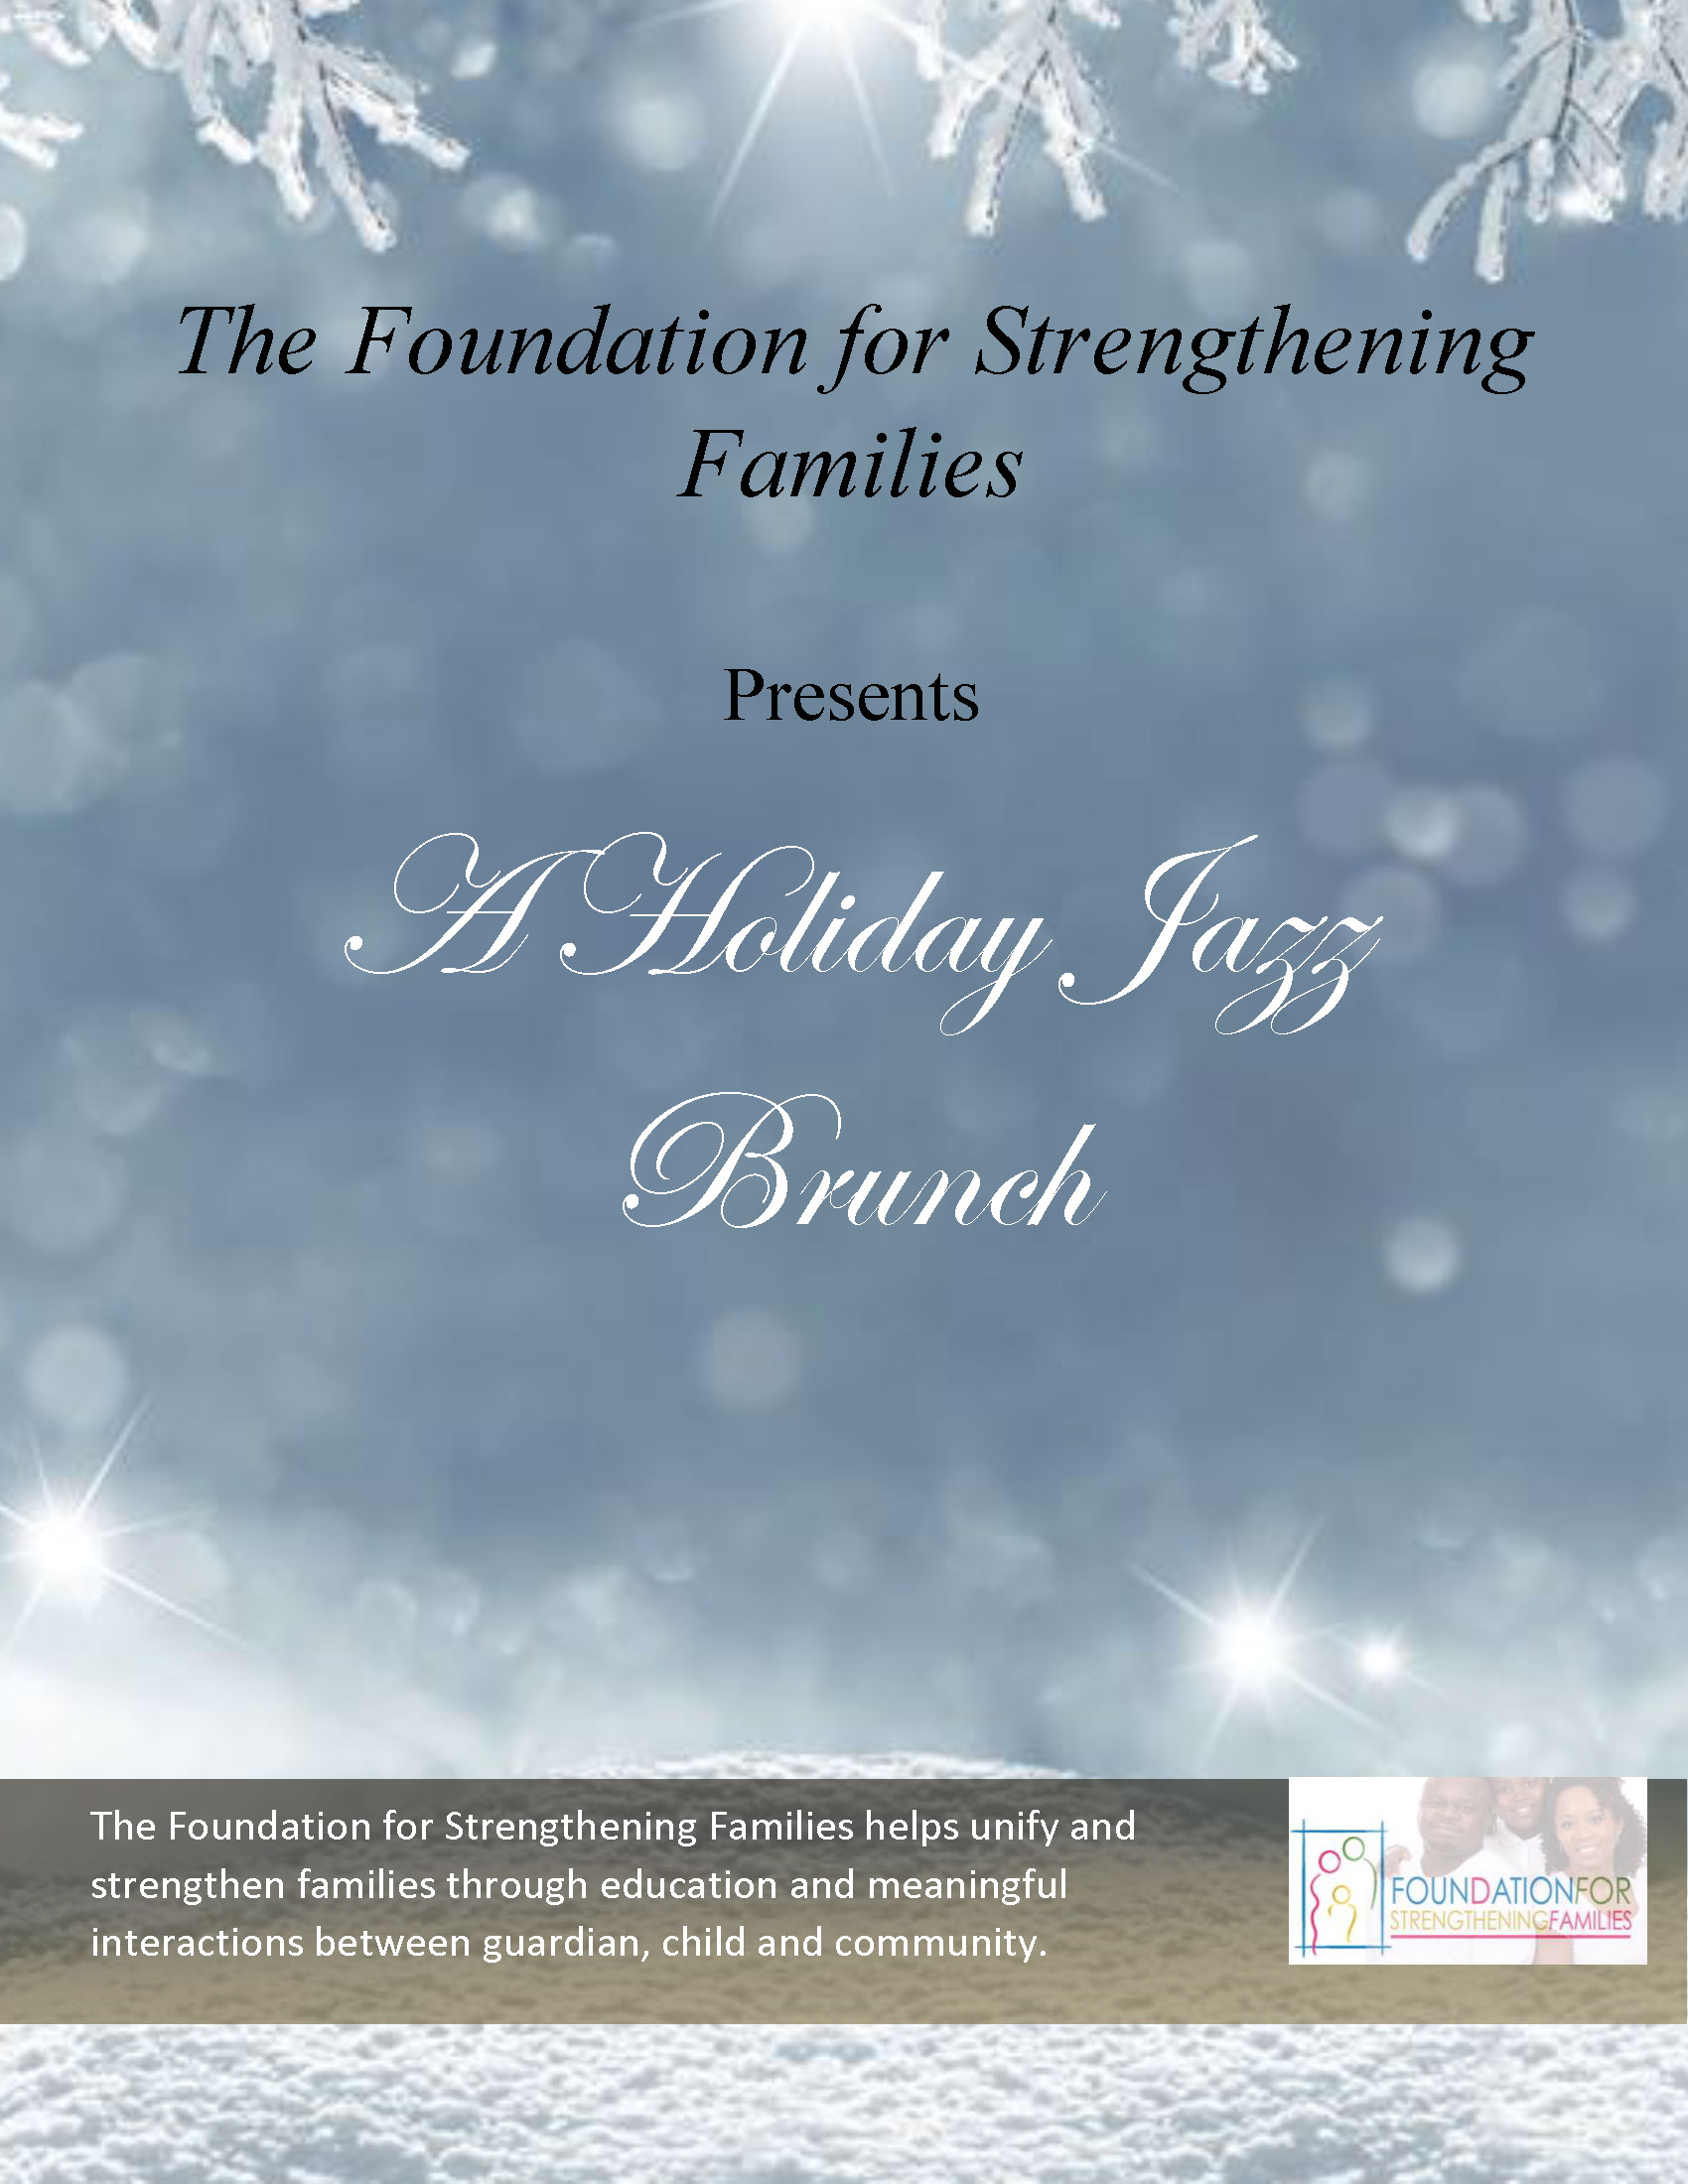 Foundation For Strengthening Families Early Childhood Education, Single Parent Help, Community Resource, Daycare in St. Louis Holiday Brunch